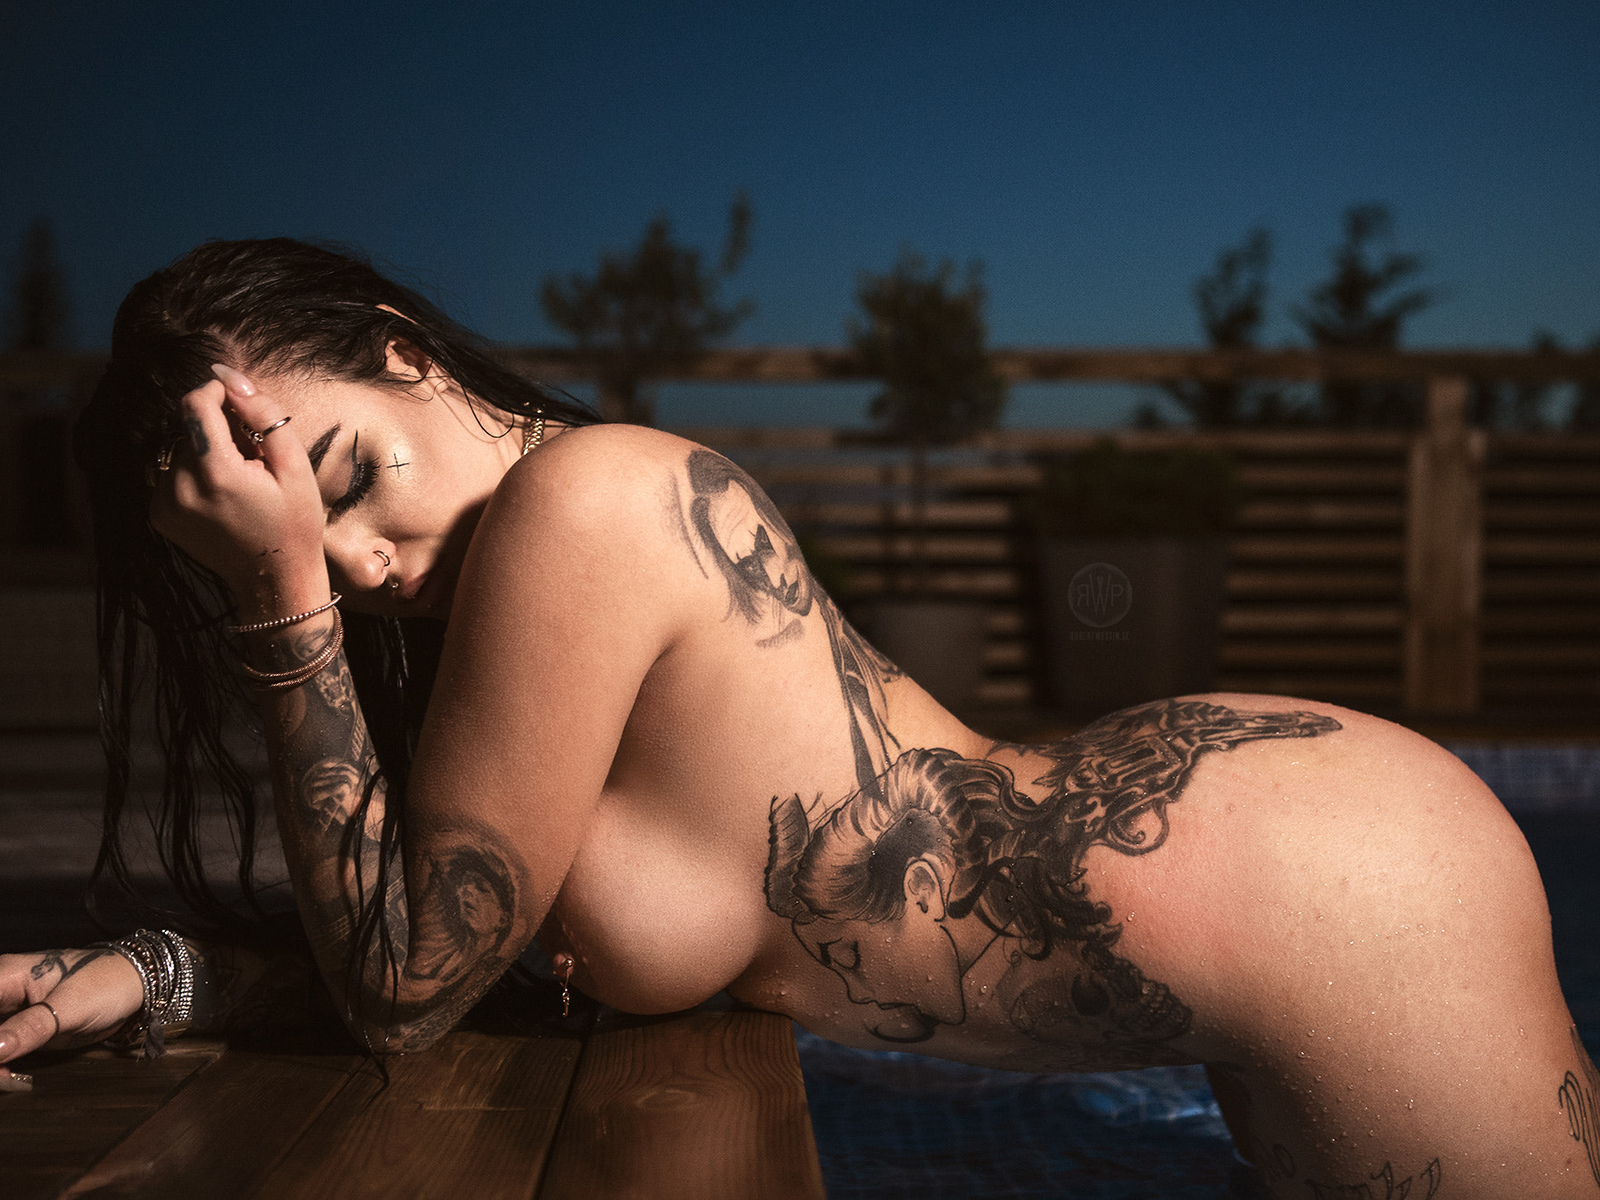 sexy-hot-naked-girl-tattoos